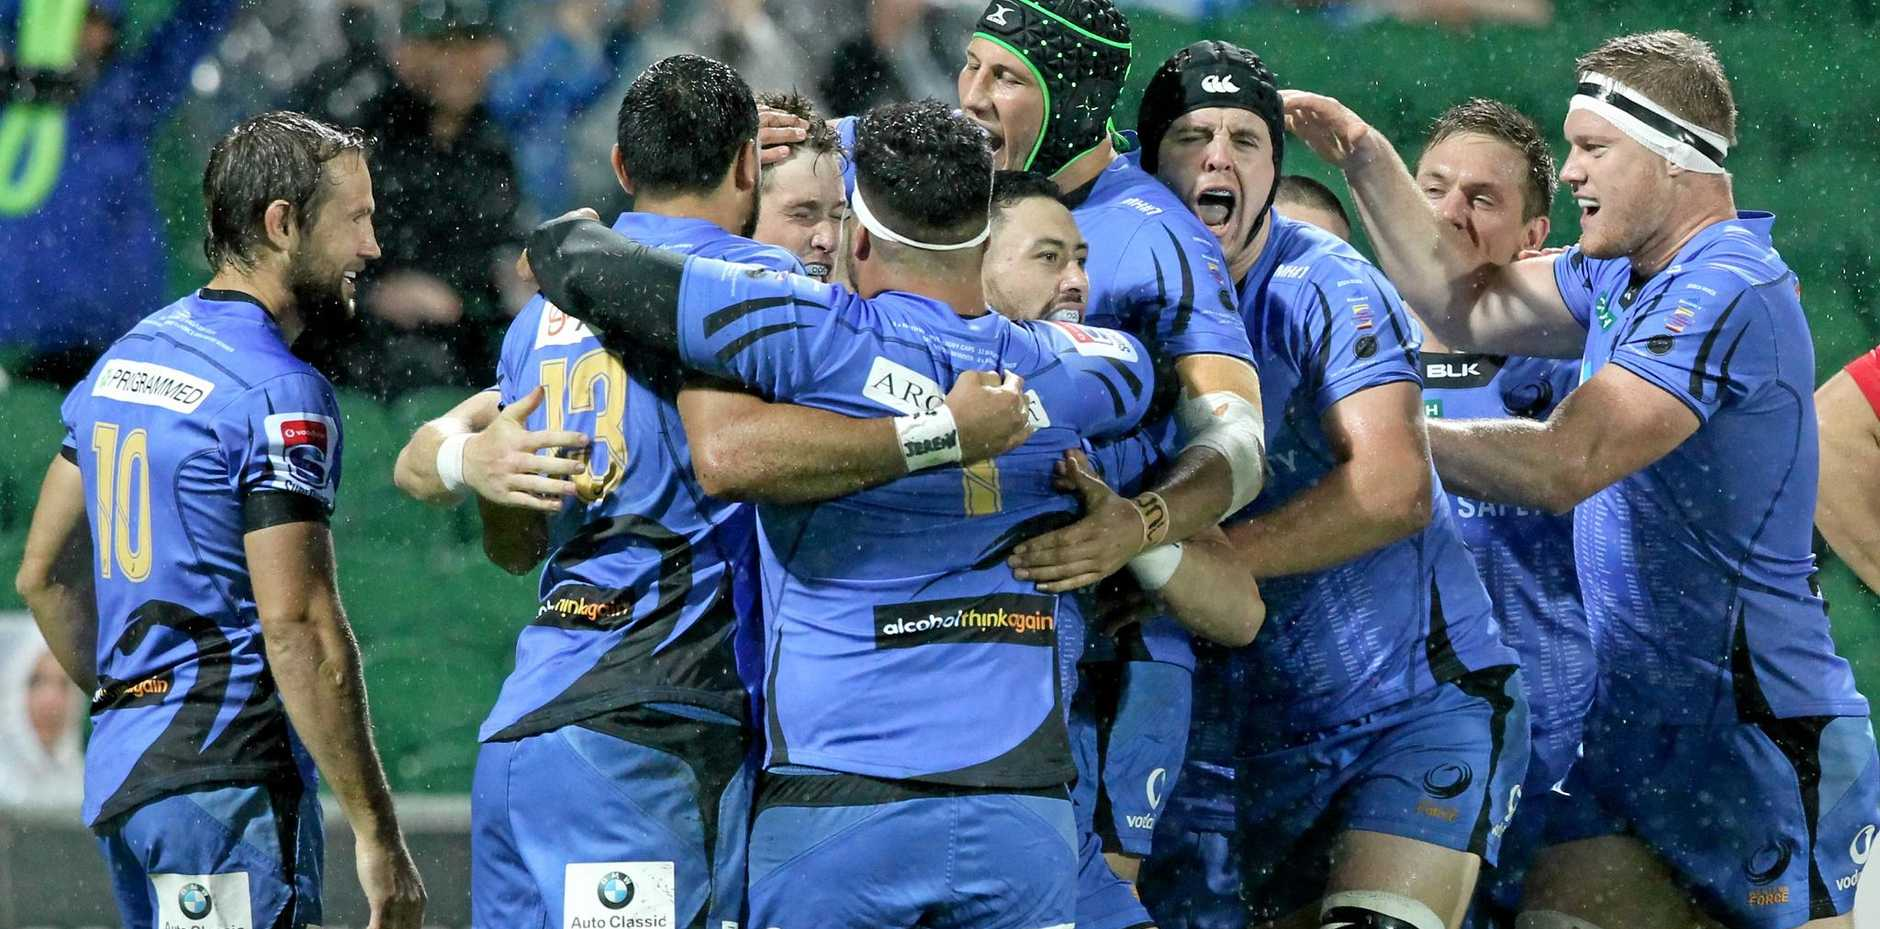 Western Force players celebrate a try during the round 17 Super Rugby match against the NSW Waratahs at nib Stadium in Perth.